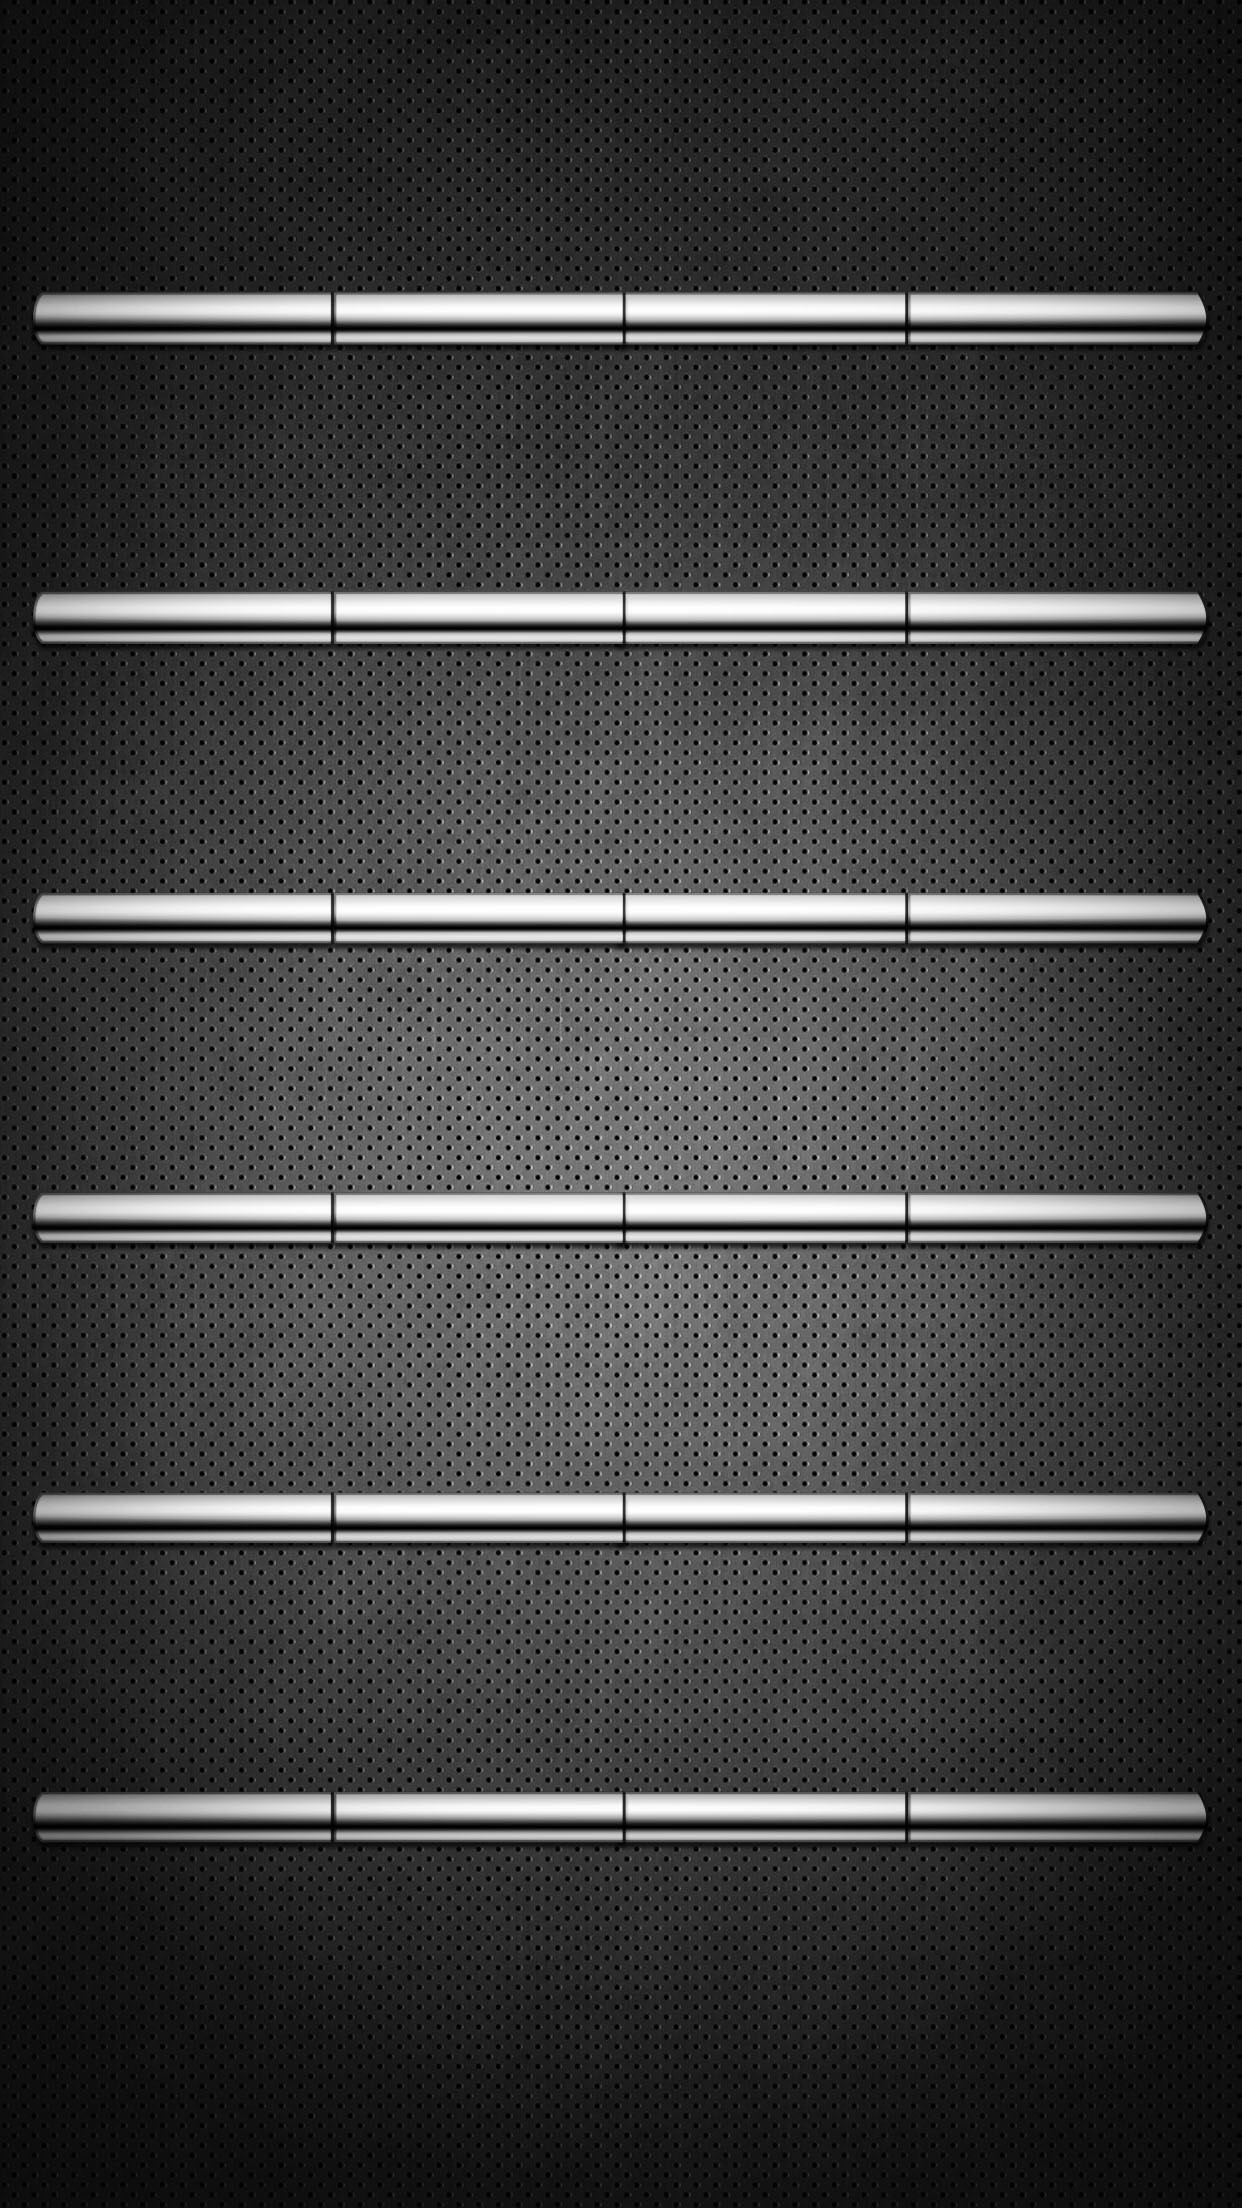 Iphone 6 Shelf Wallpaper 91 Images